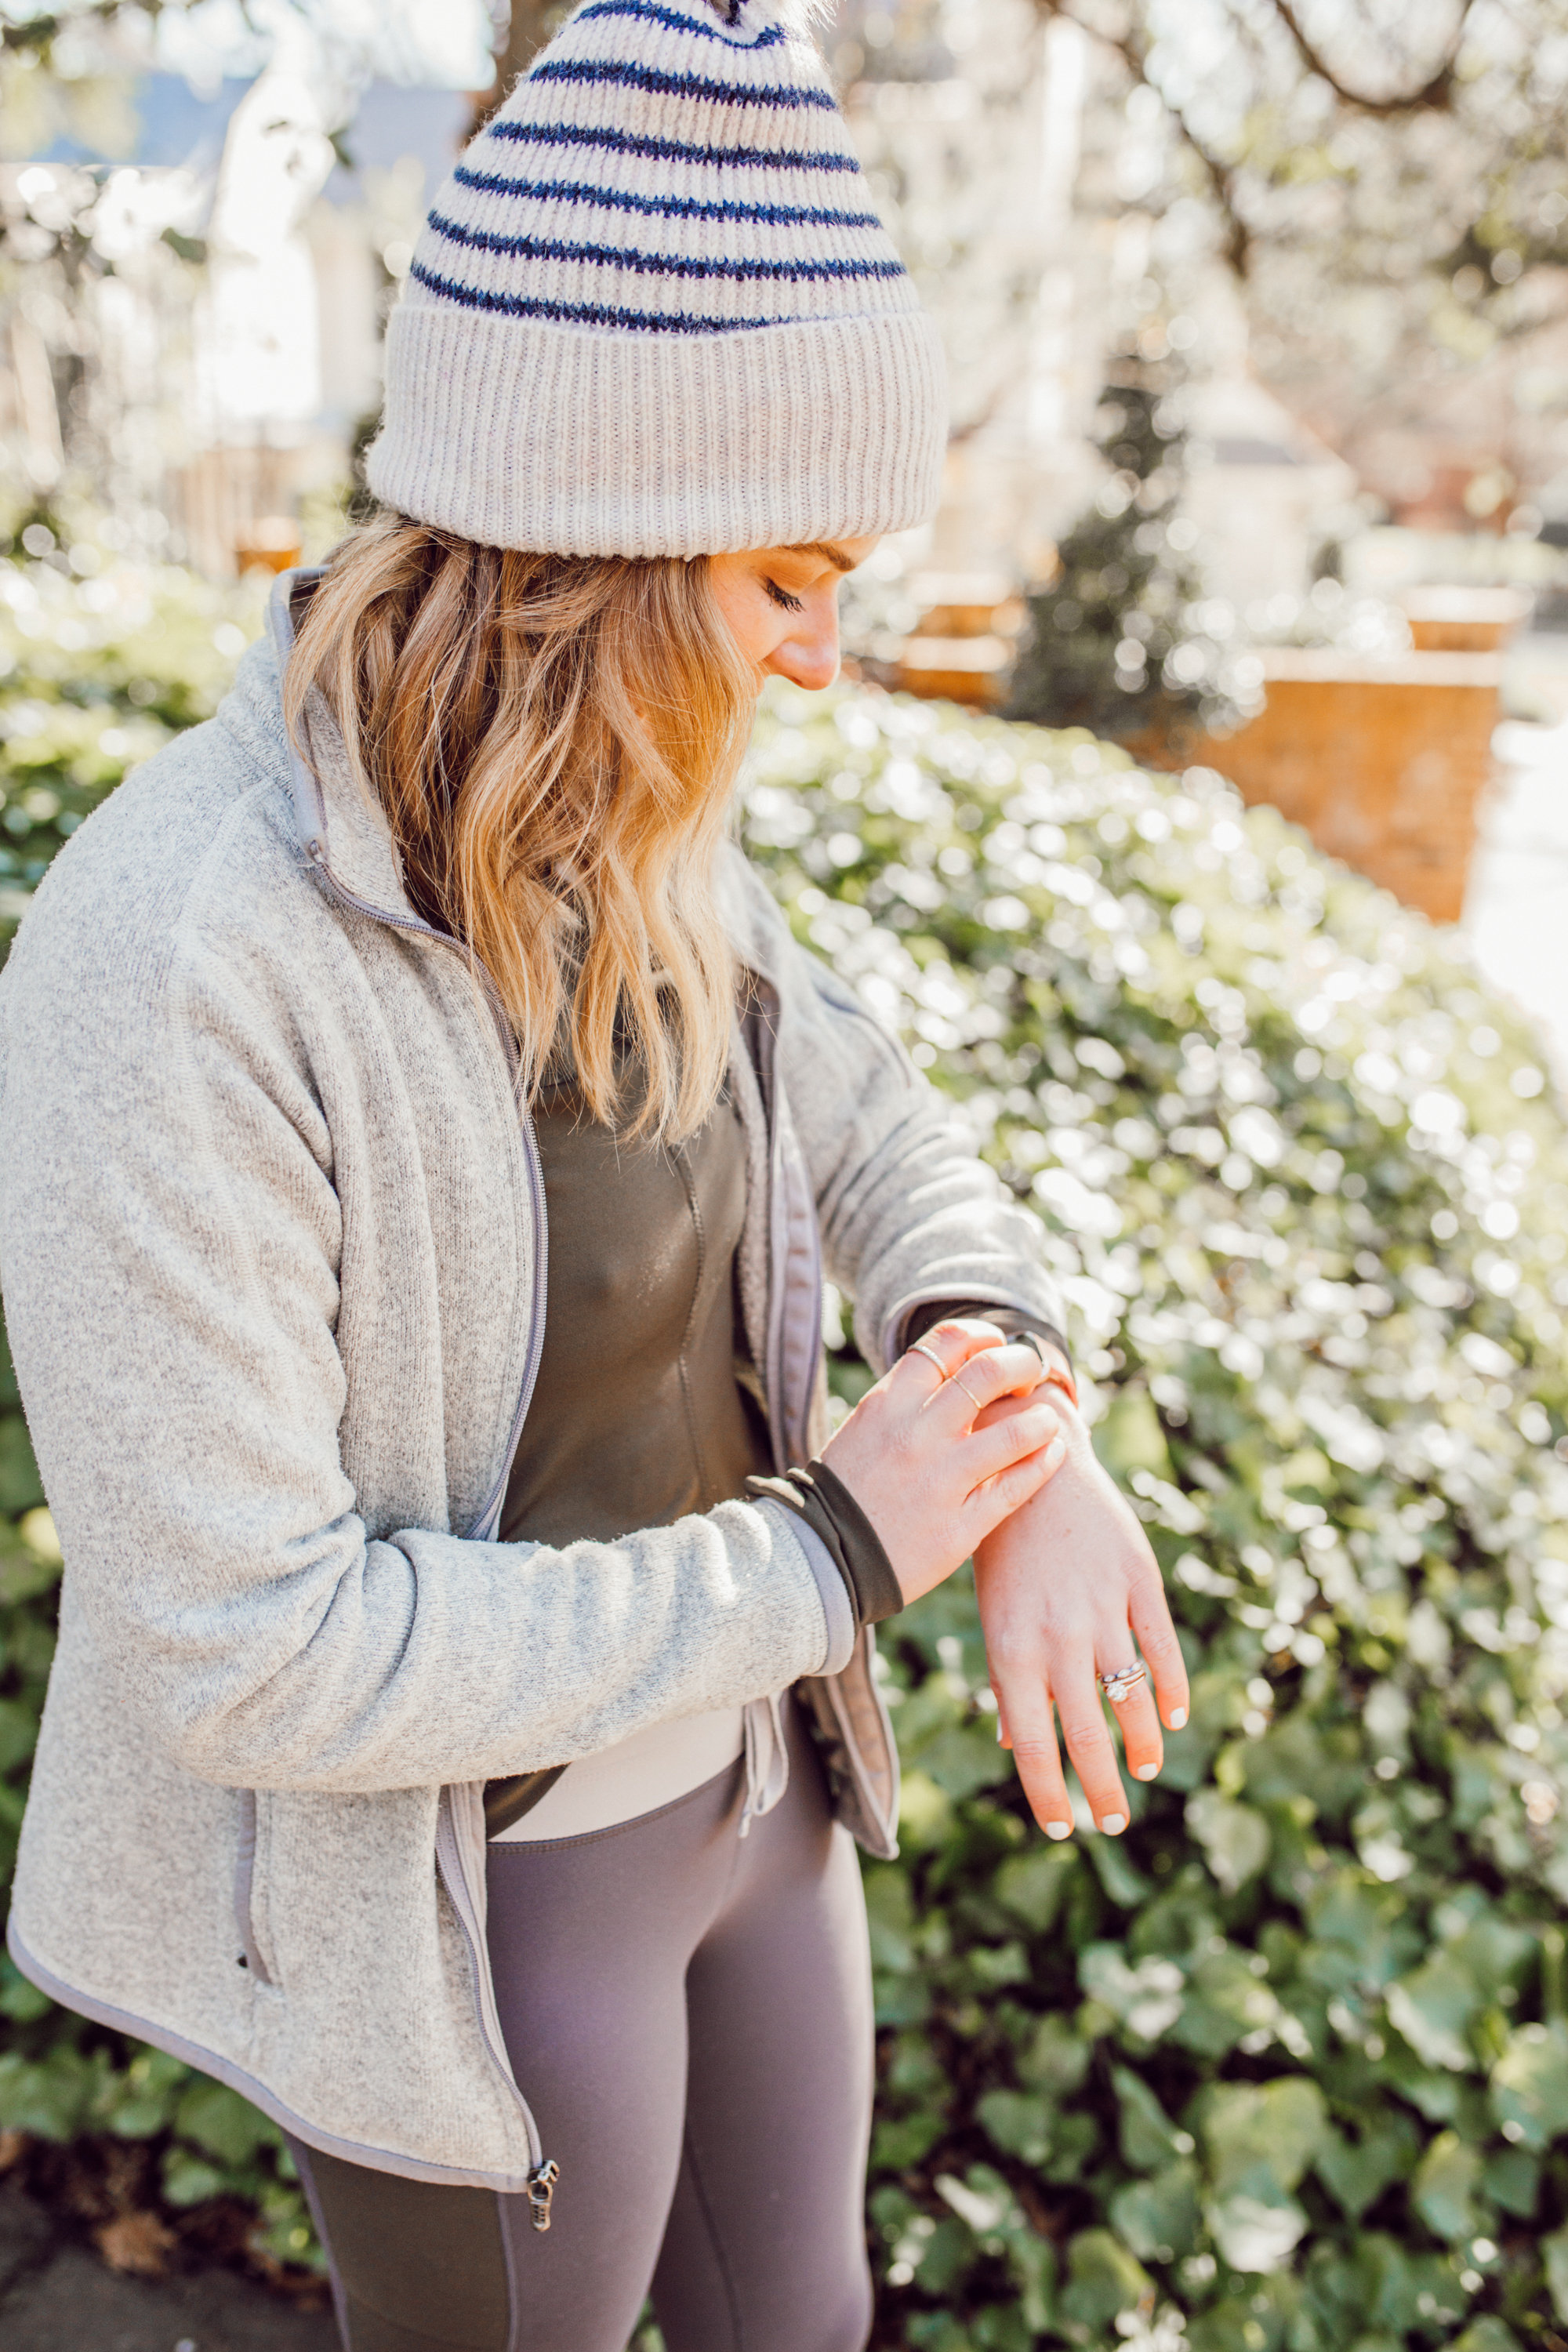 FWTFL vs BBG: How they compare and overall thoughts on the two programs | Cute Winter Activewear | Louella Reese